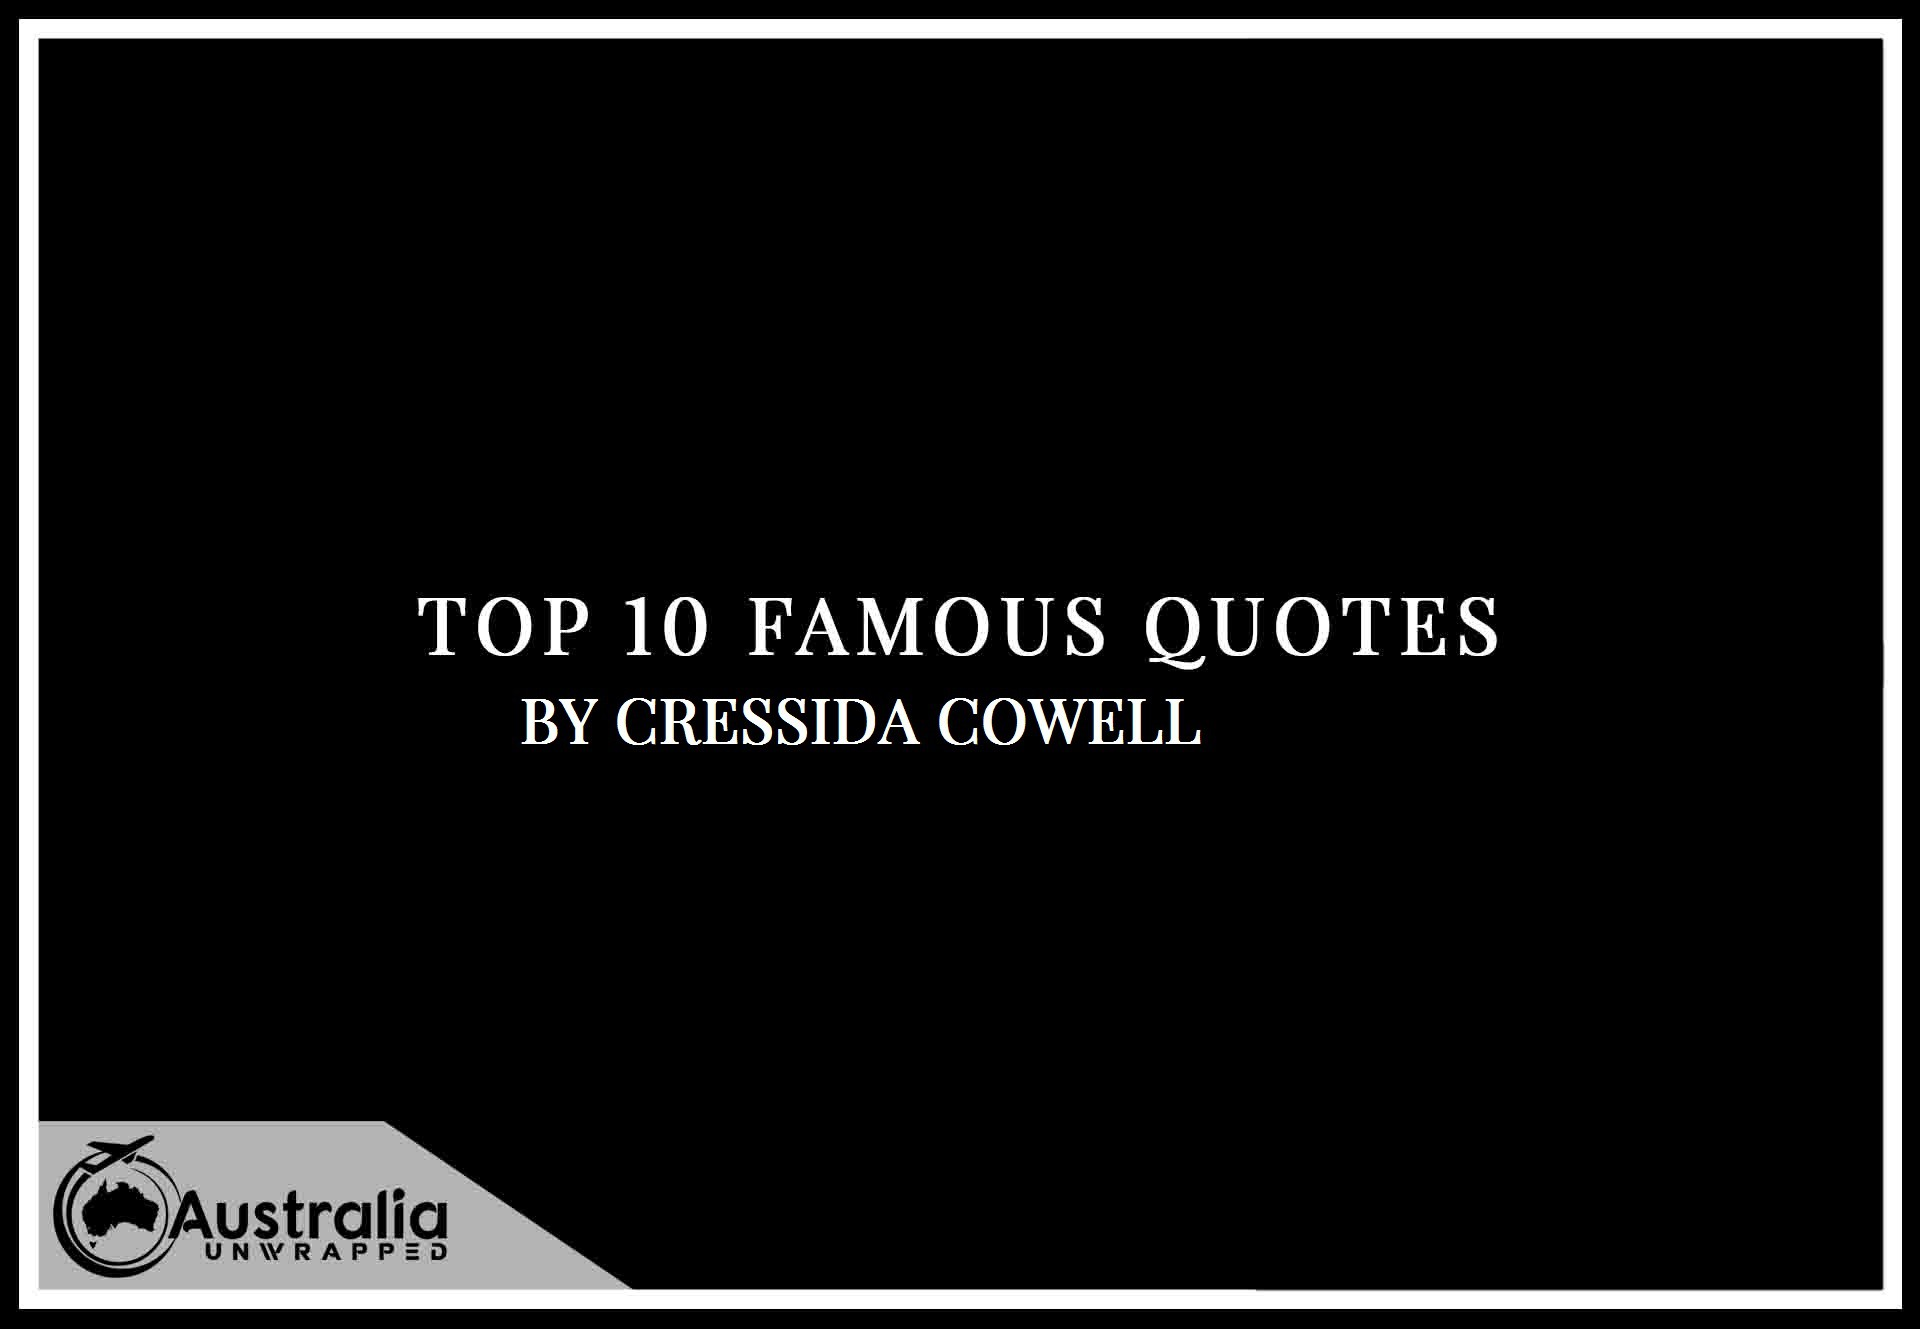 Cressida Cowell's Top 10 Popular and Famous Quotes